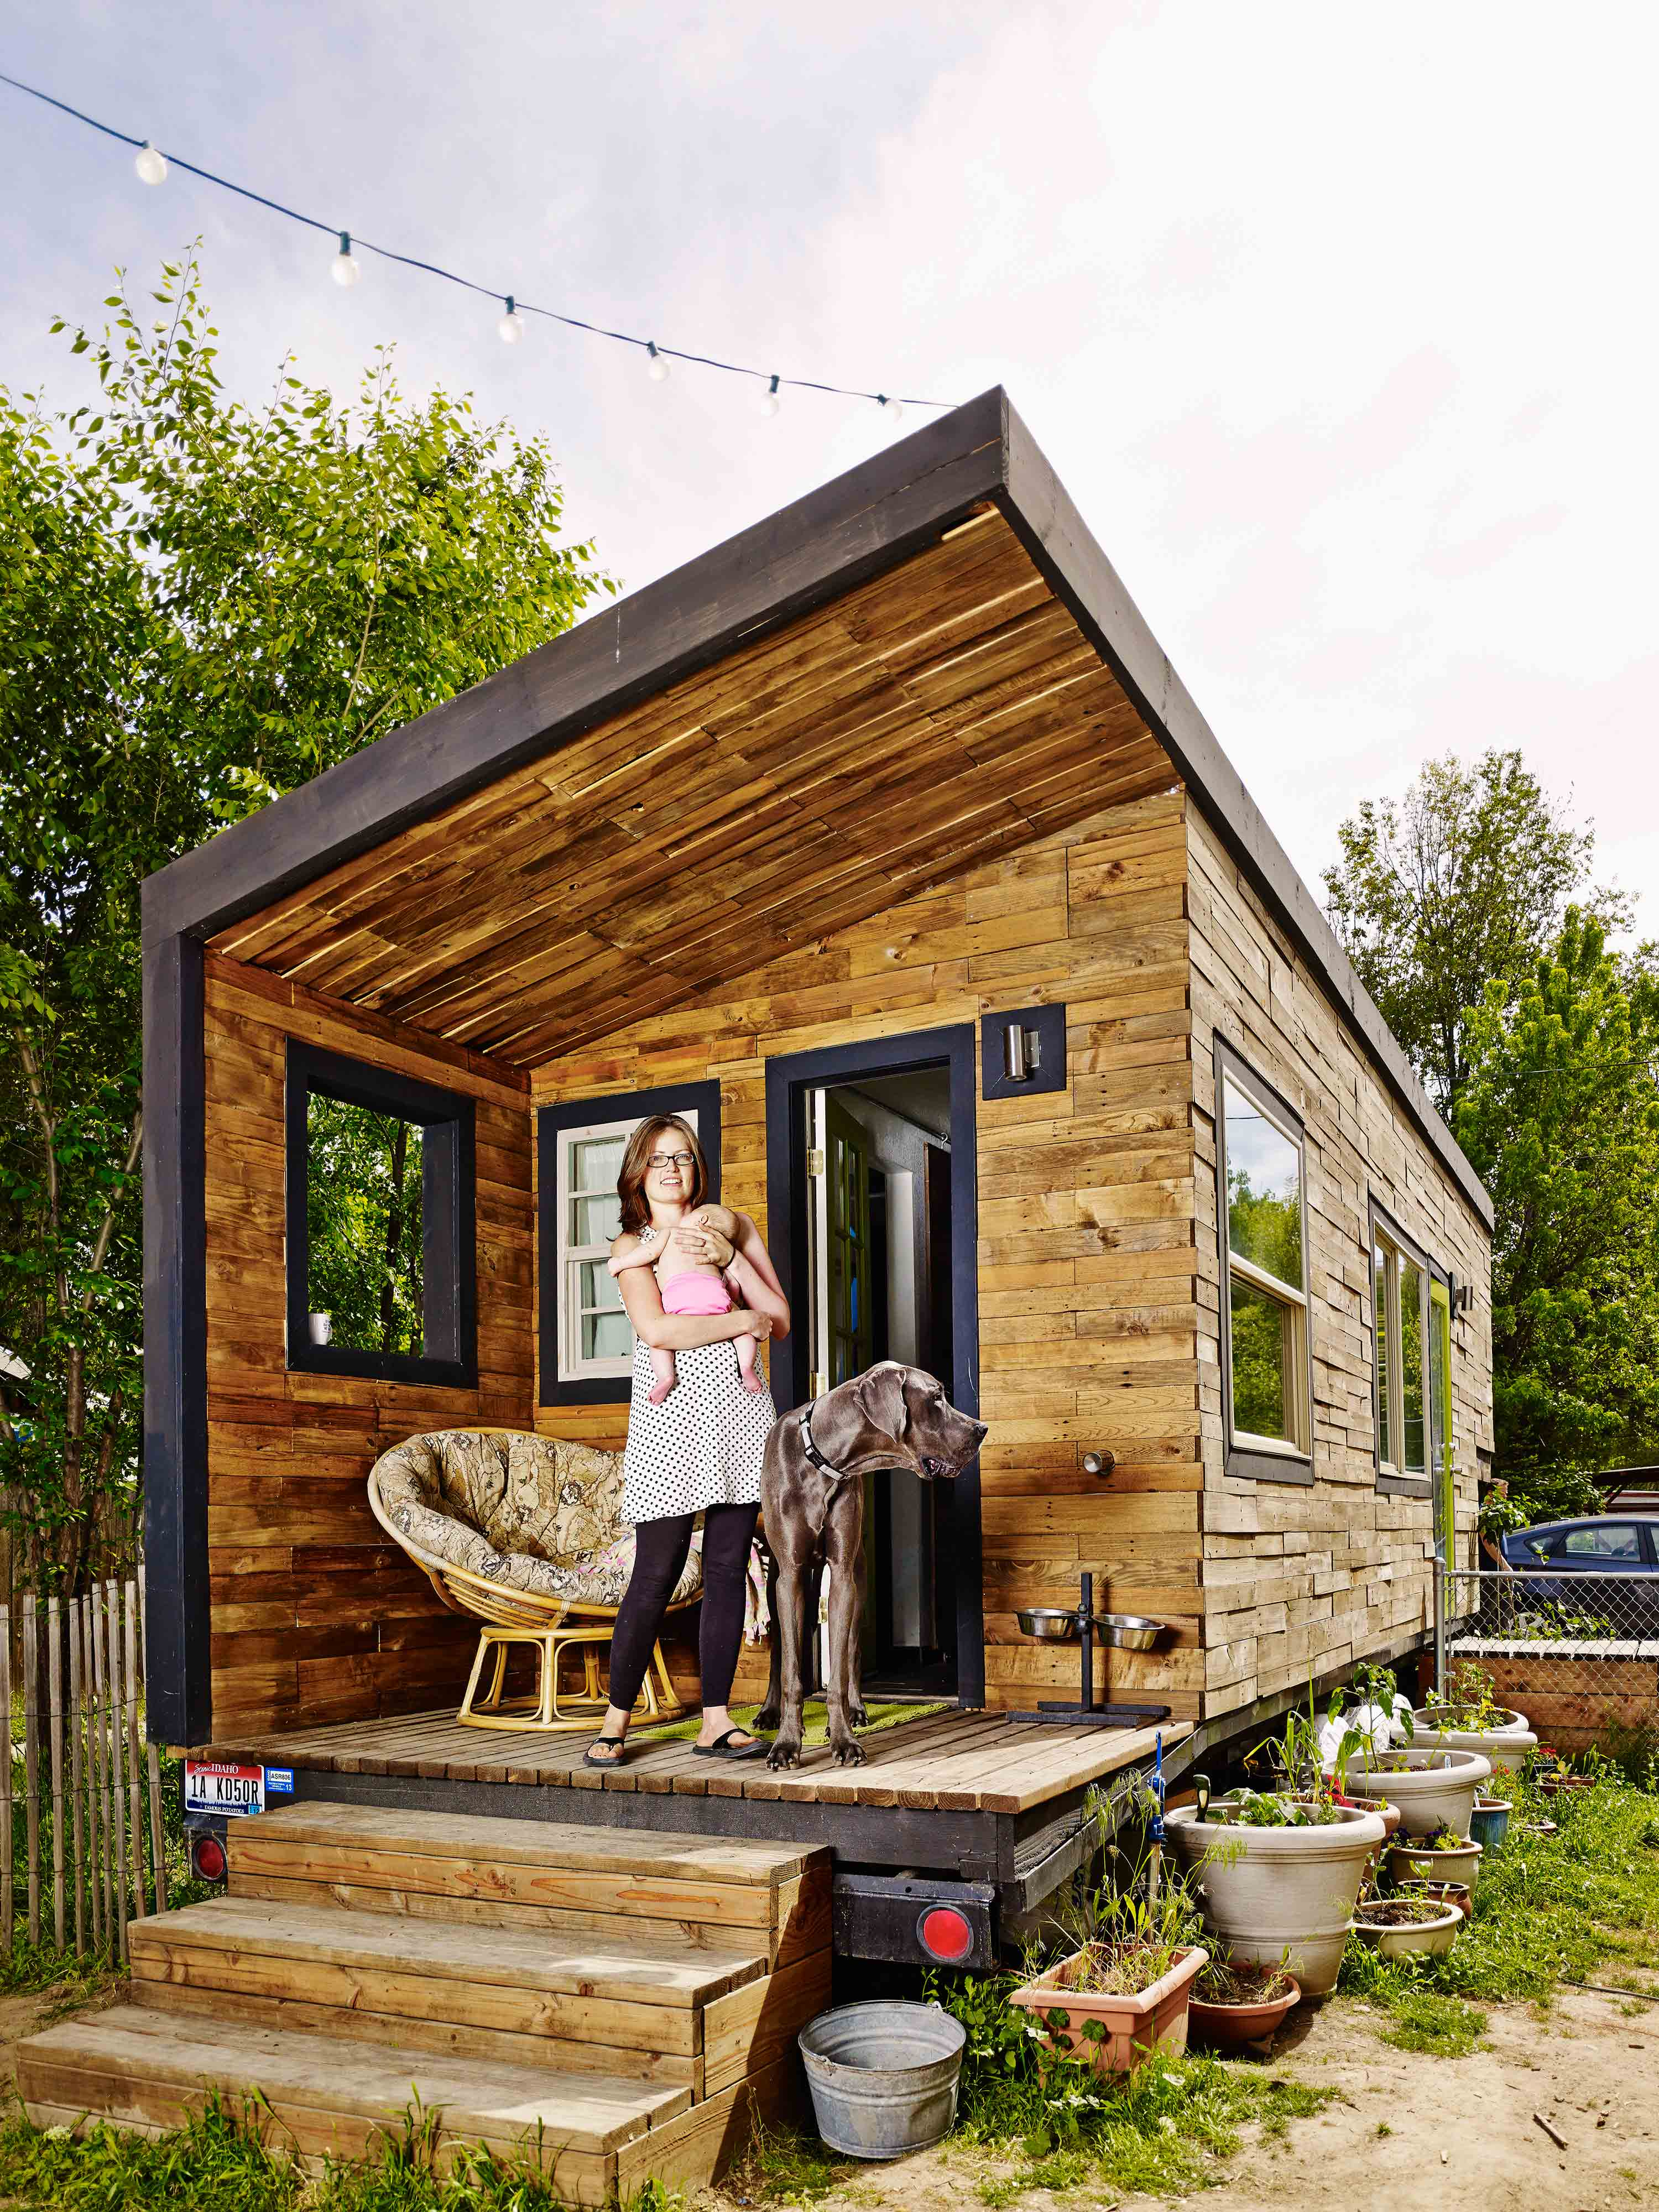 To build her 200sq.ft. tiny home in Boise, Idaho in 2007, Macy Miller, then a 22-year-old architect, bought a flatbed trailer ($500), rented a 0.125-acre lot ($200 a month) and spent 18 months tinkering with the construction.